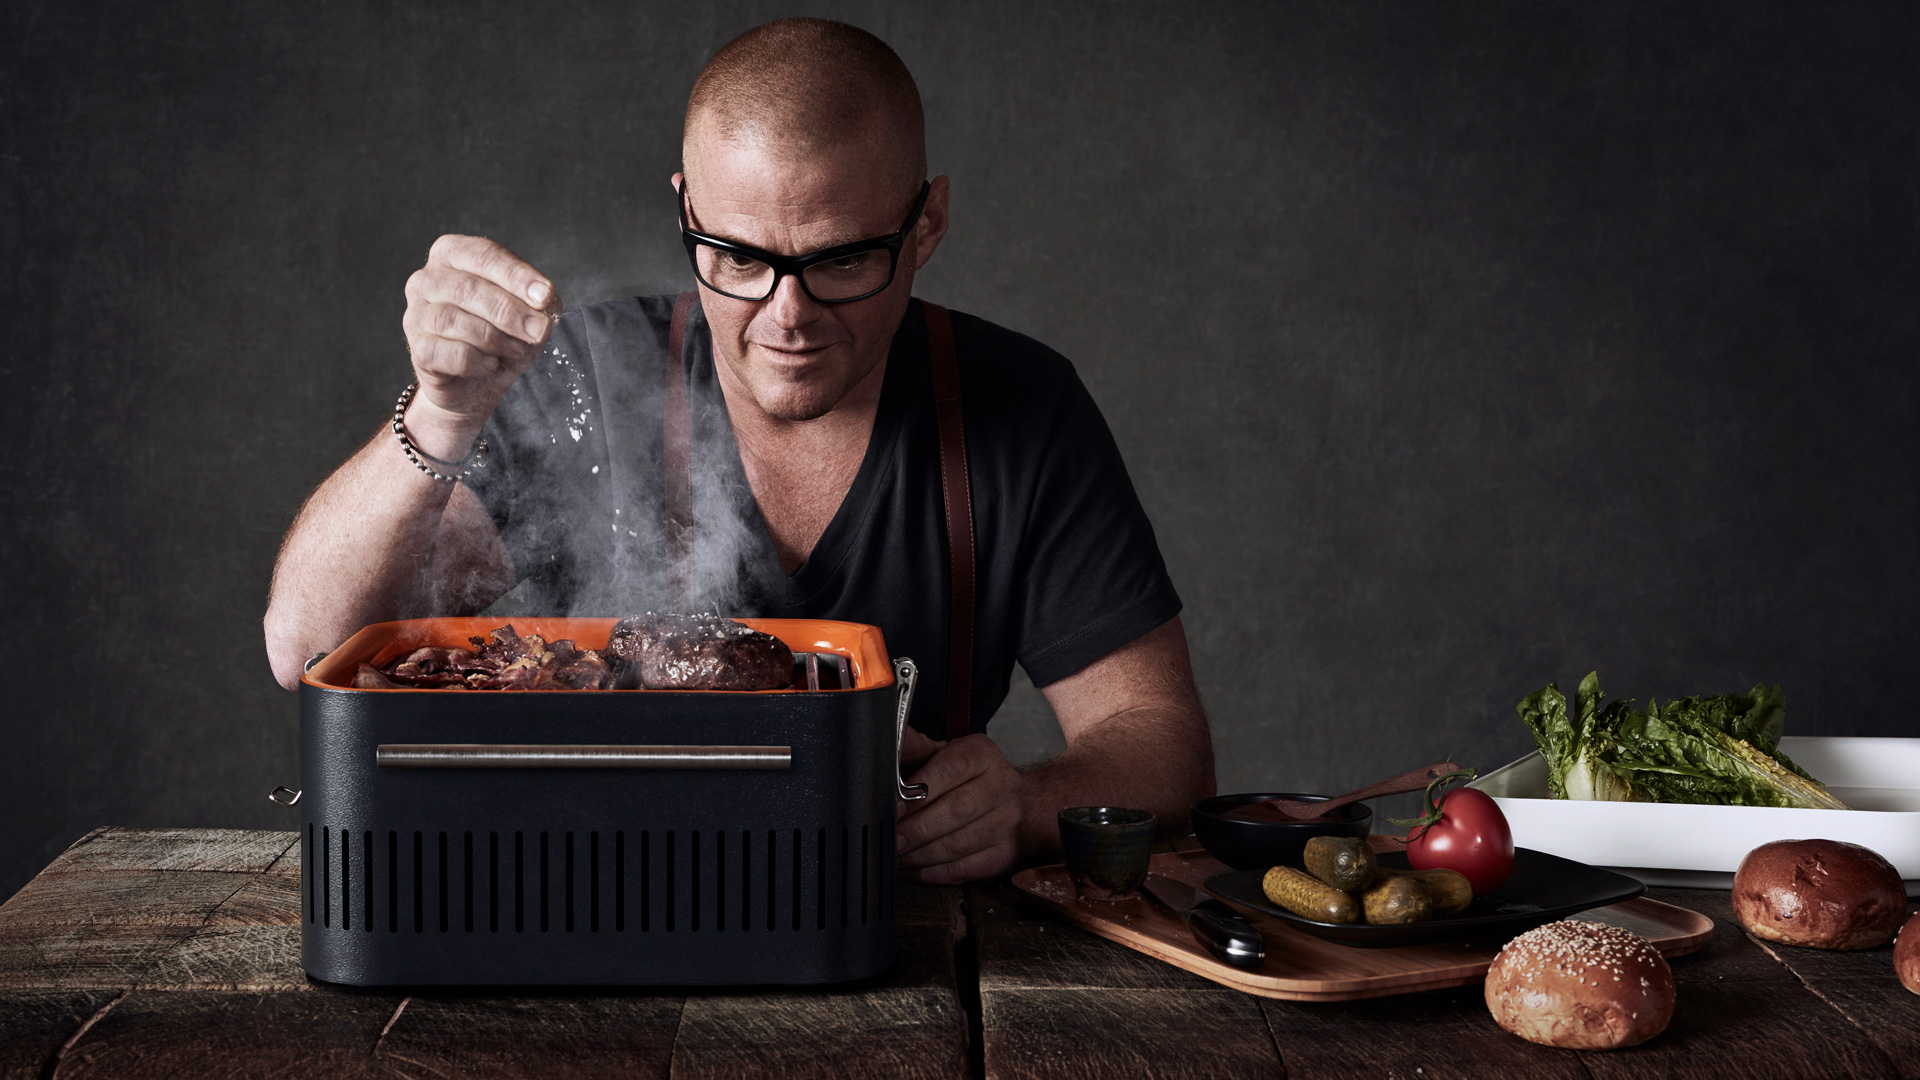 Everdure by Heston Blumenthal Portable Charcoal Barbeque